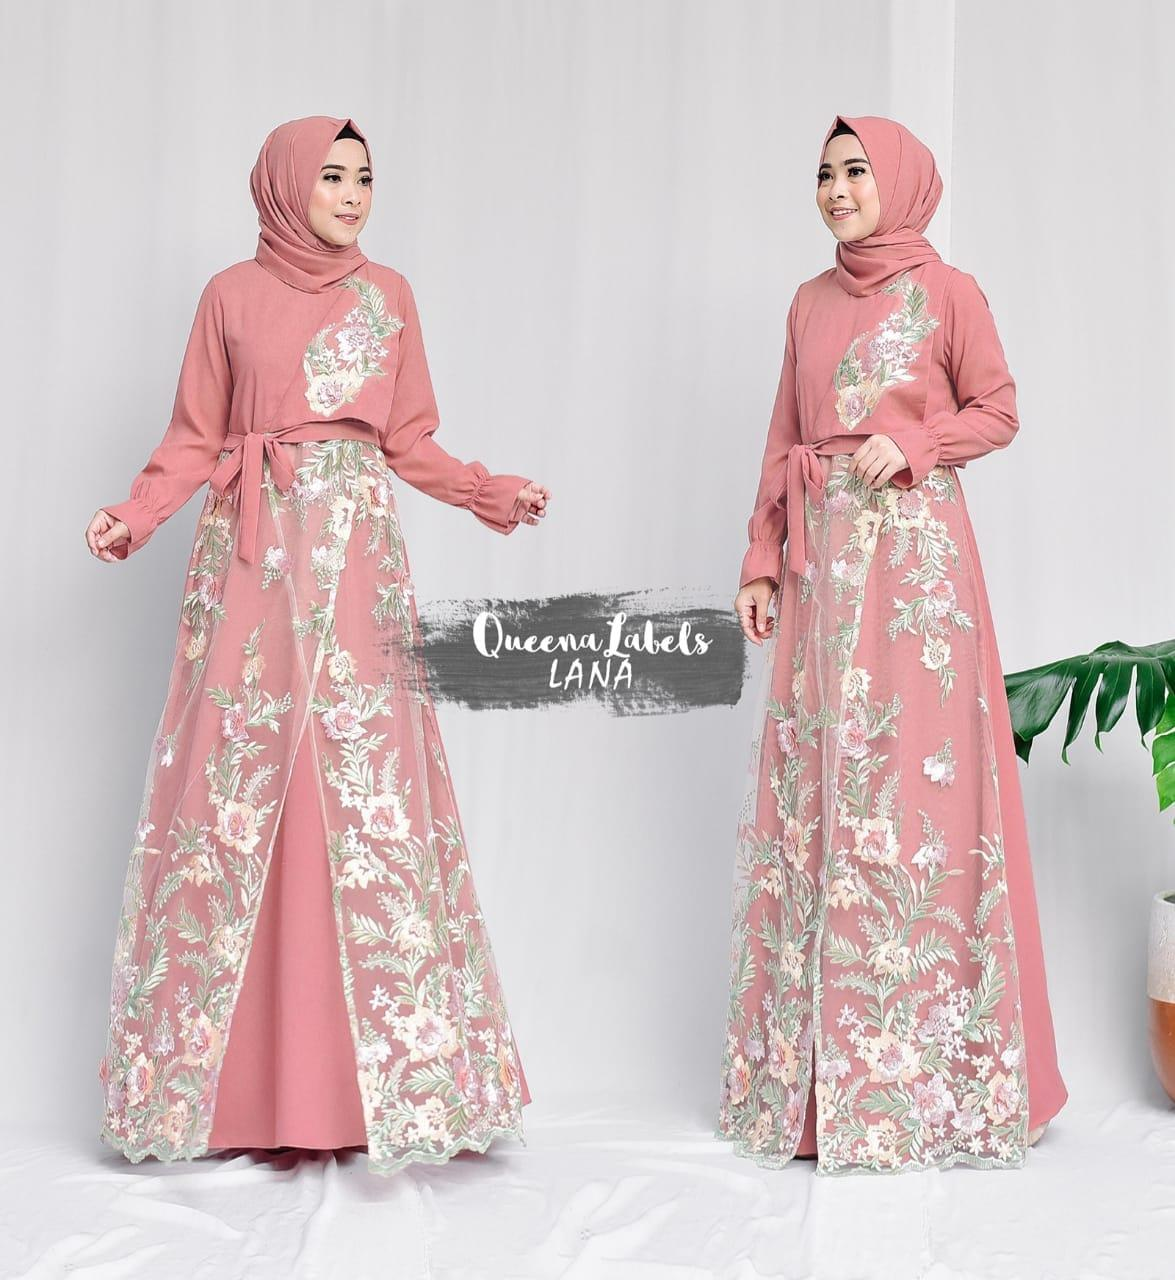 Dress Pesta 2in1 Ity Crept mix Brokat Salem Hijau Ori Branded by Queenalabels